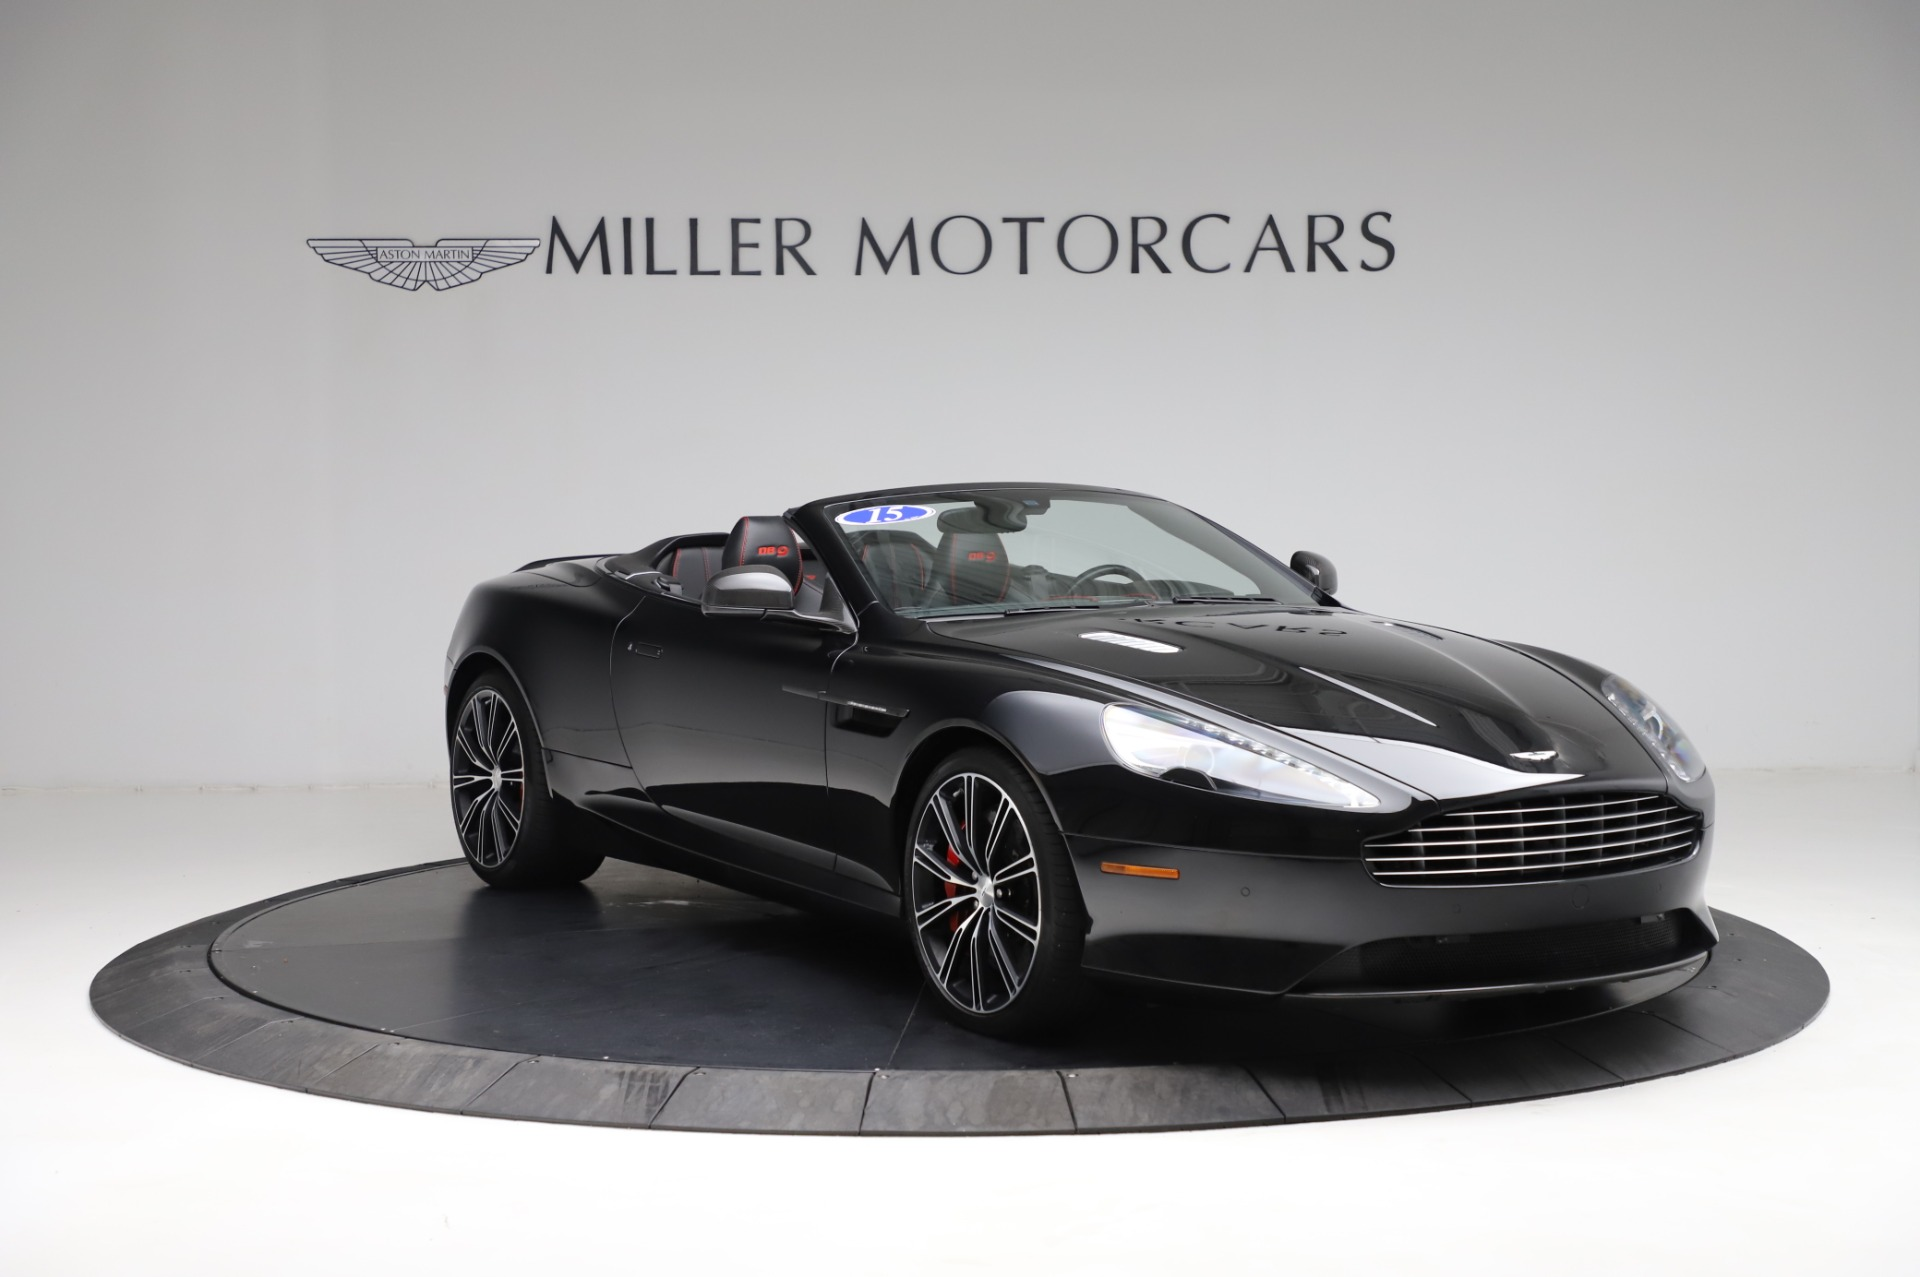 Used 2015 Aston Martin DB9 Carbon Edition Volante For Sale In Westport, CT 1919_p10